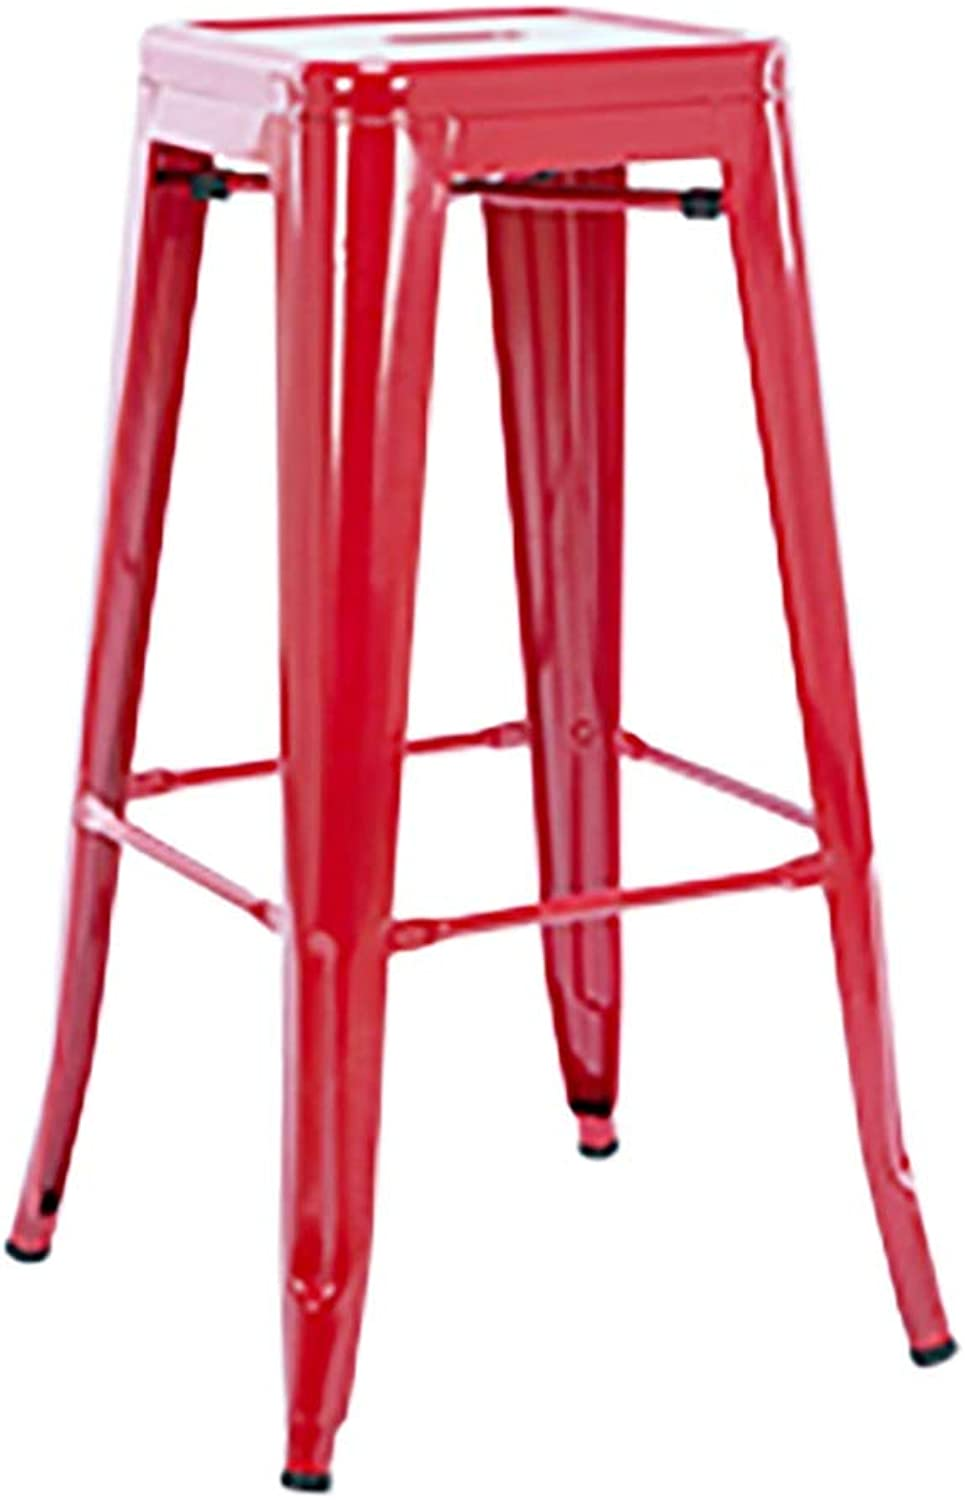 TXXM Barstools Title:Metal bar Stool bar Stool high Stool Low Stool Iron Stool Wrought Iron Solid Wood Home bar Chair (color   Red, Size   D(76cm))